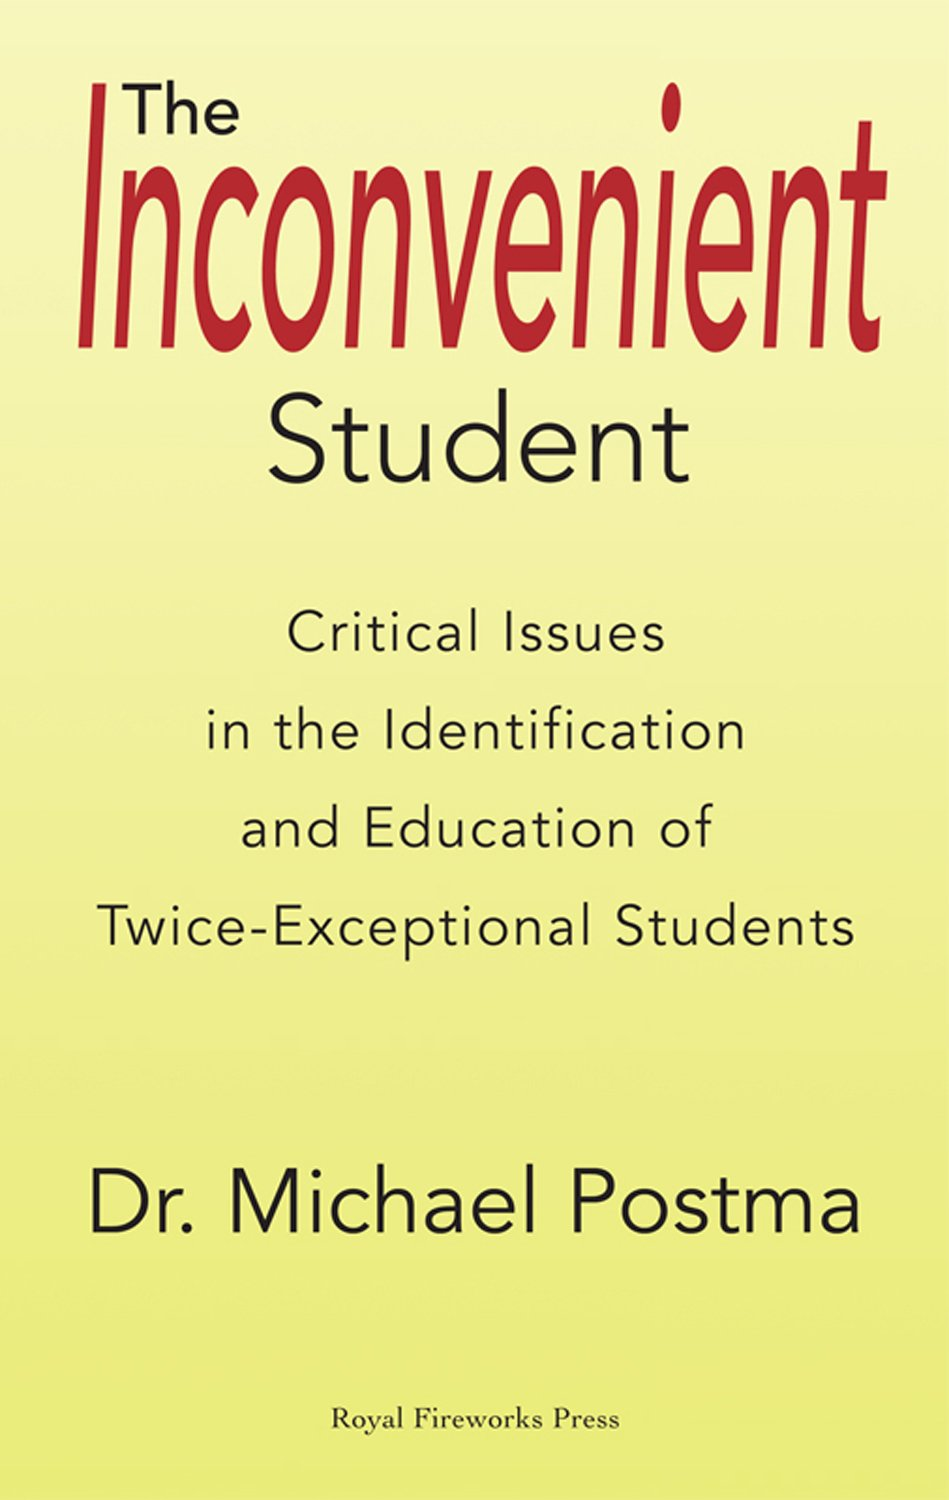 Twice Exceptional Kids Both Gifted And >> The Inconvenient Student Critical Issues In The Identification And